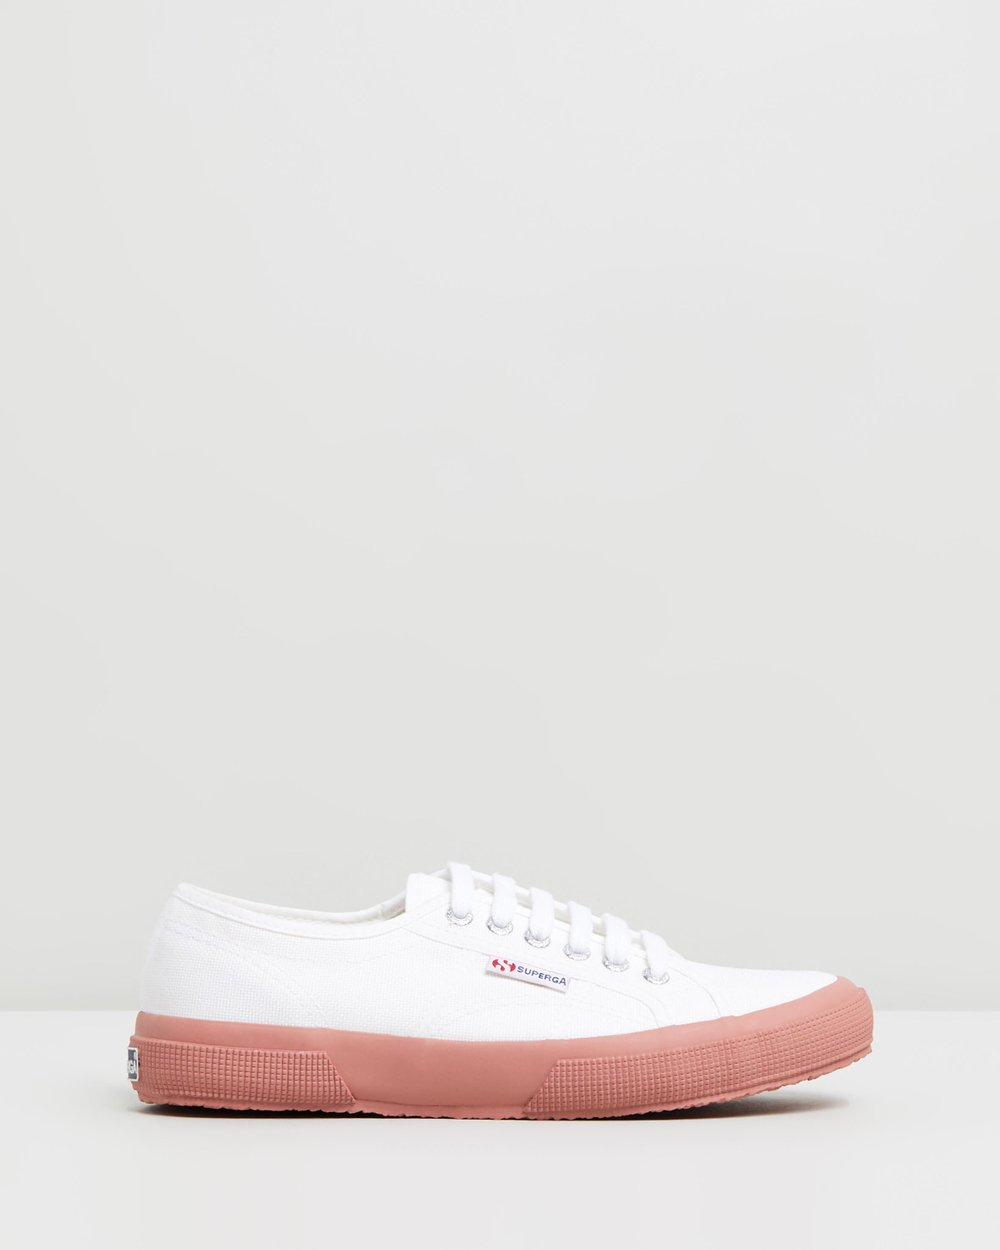 cfdd361eac4a 2750 Cotu Classic - Women s by Superga Online